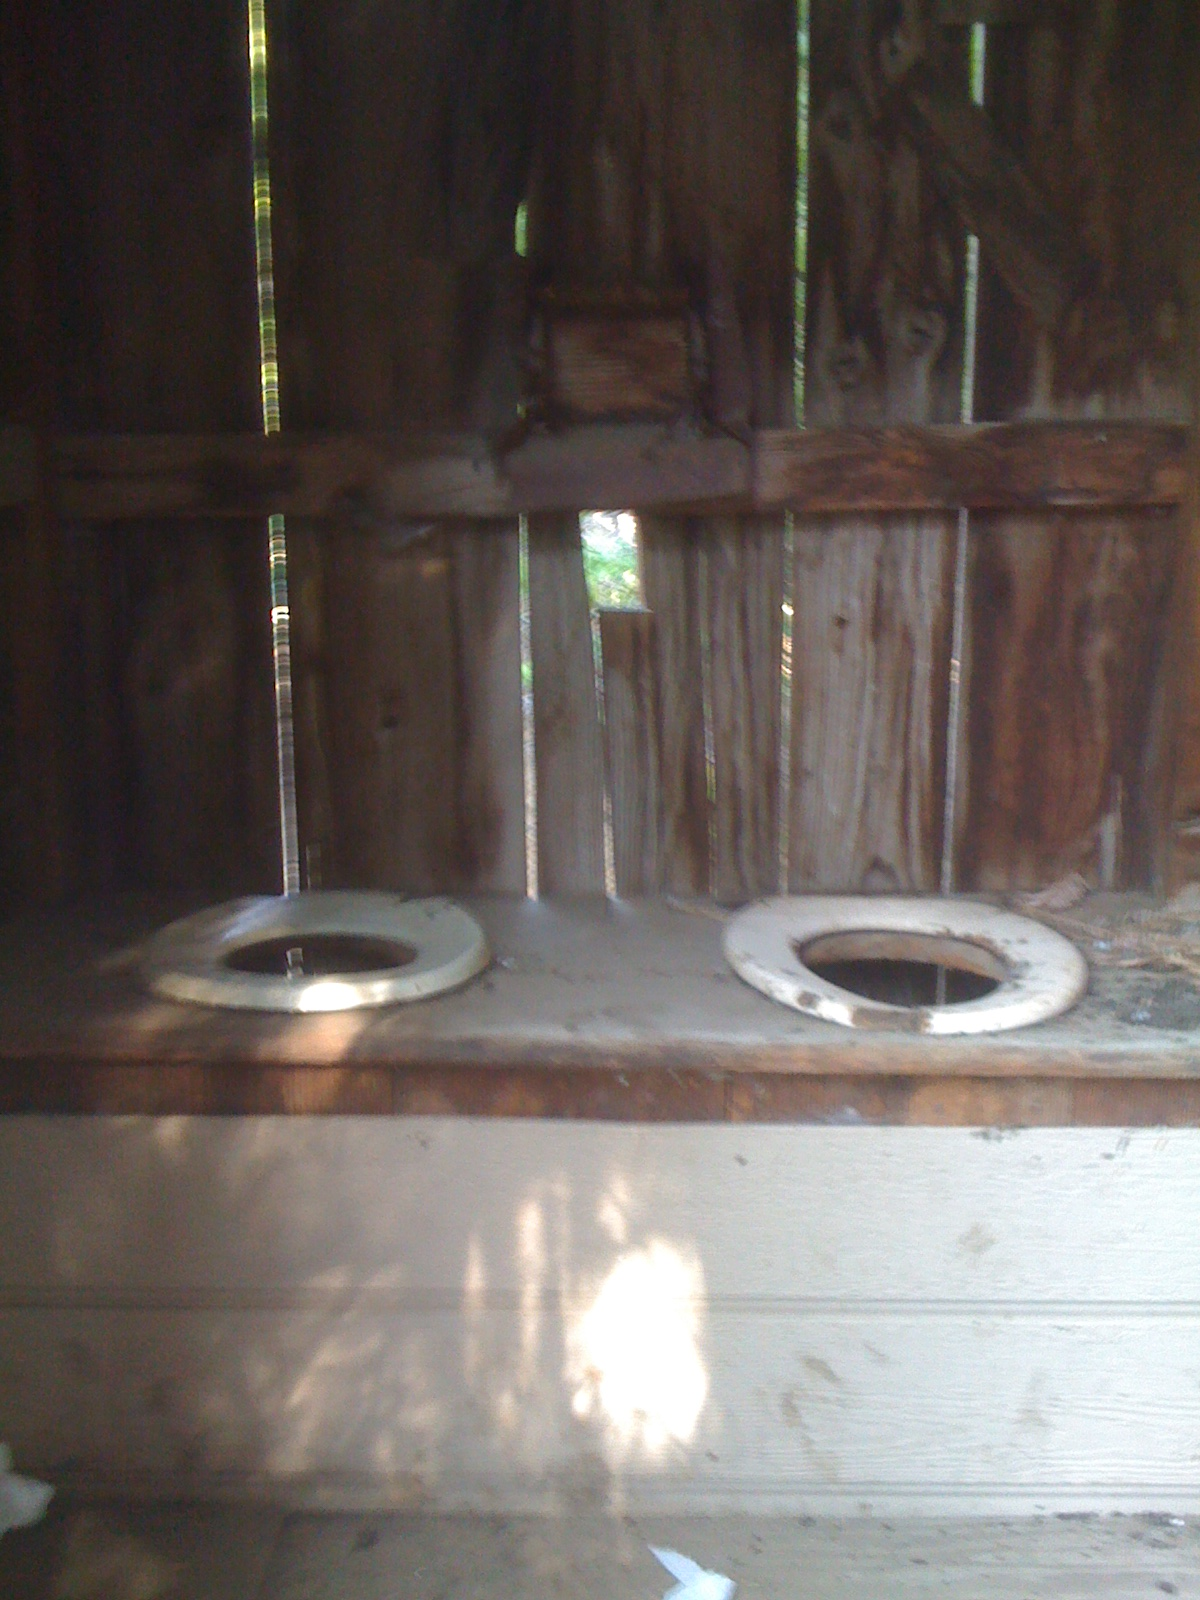 Double seat outhouse - his & hers outhouse - Soda Mountain Wilderness